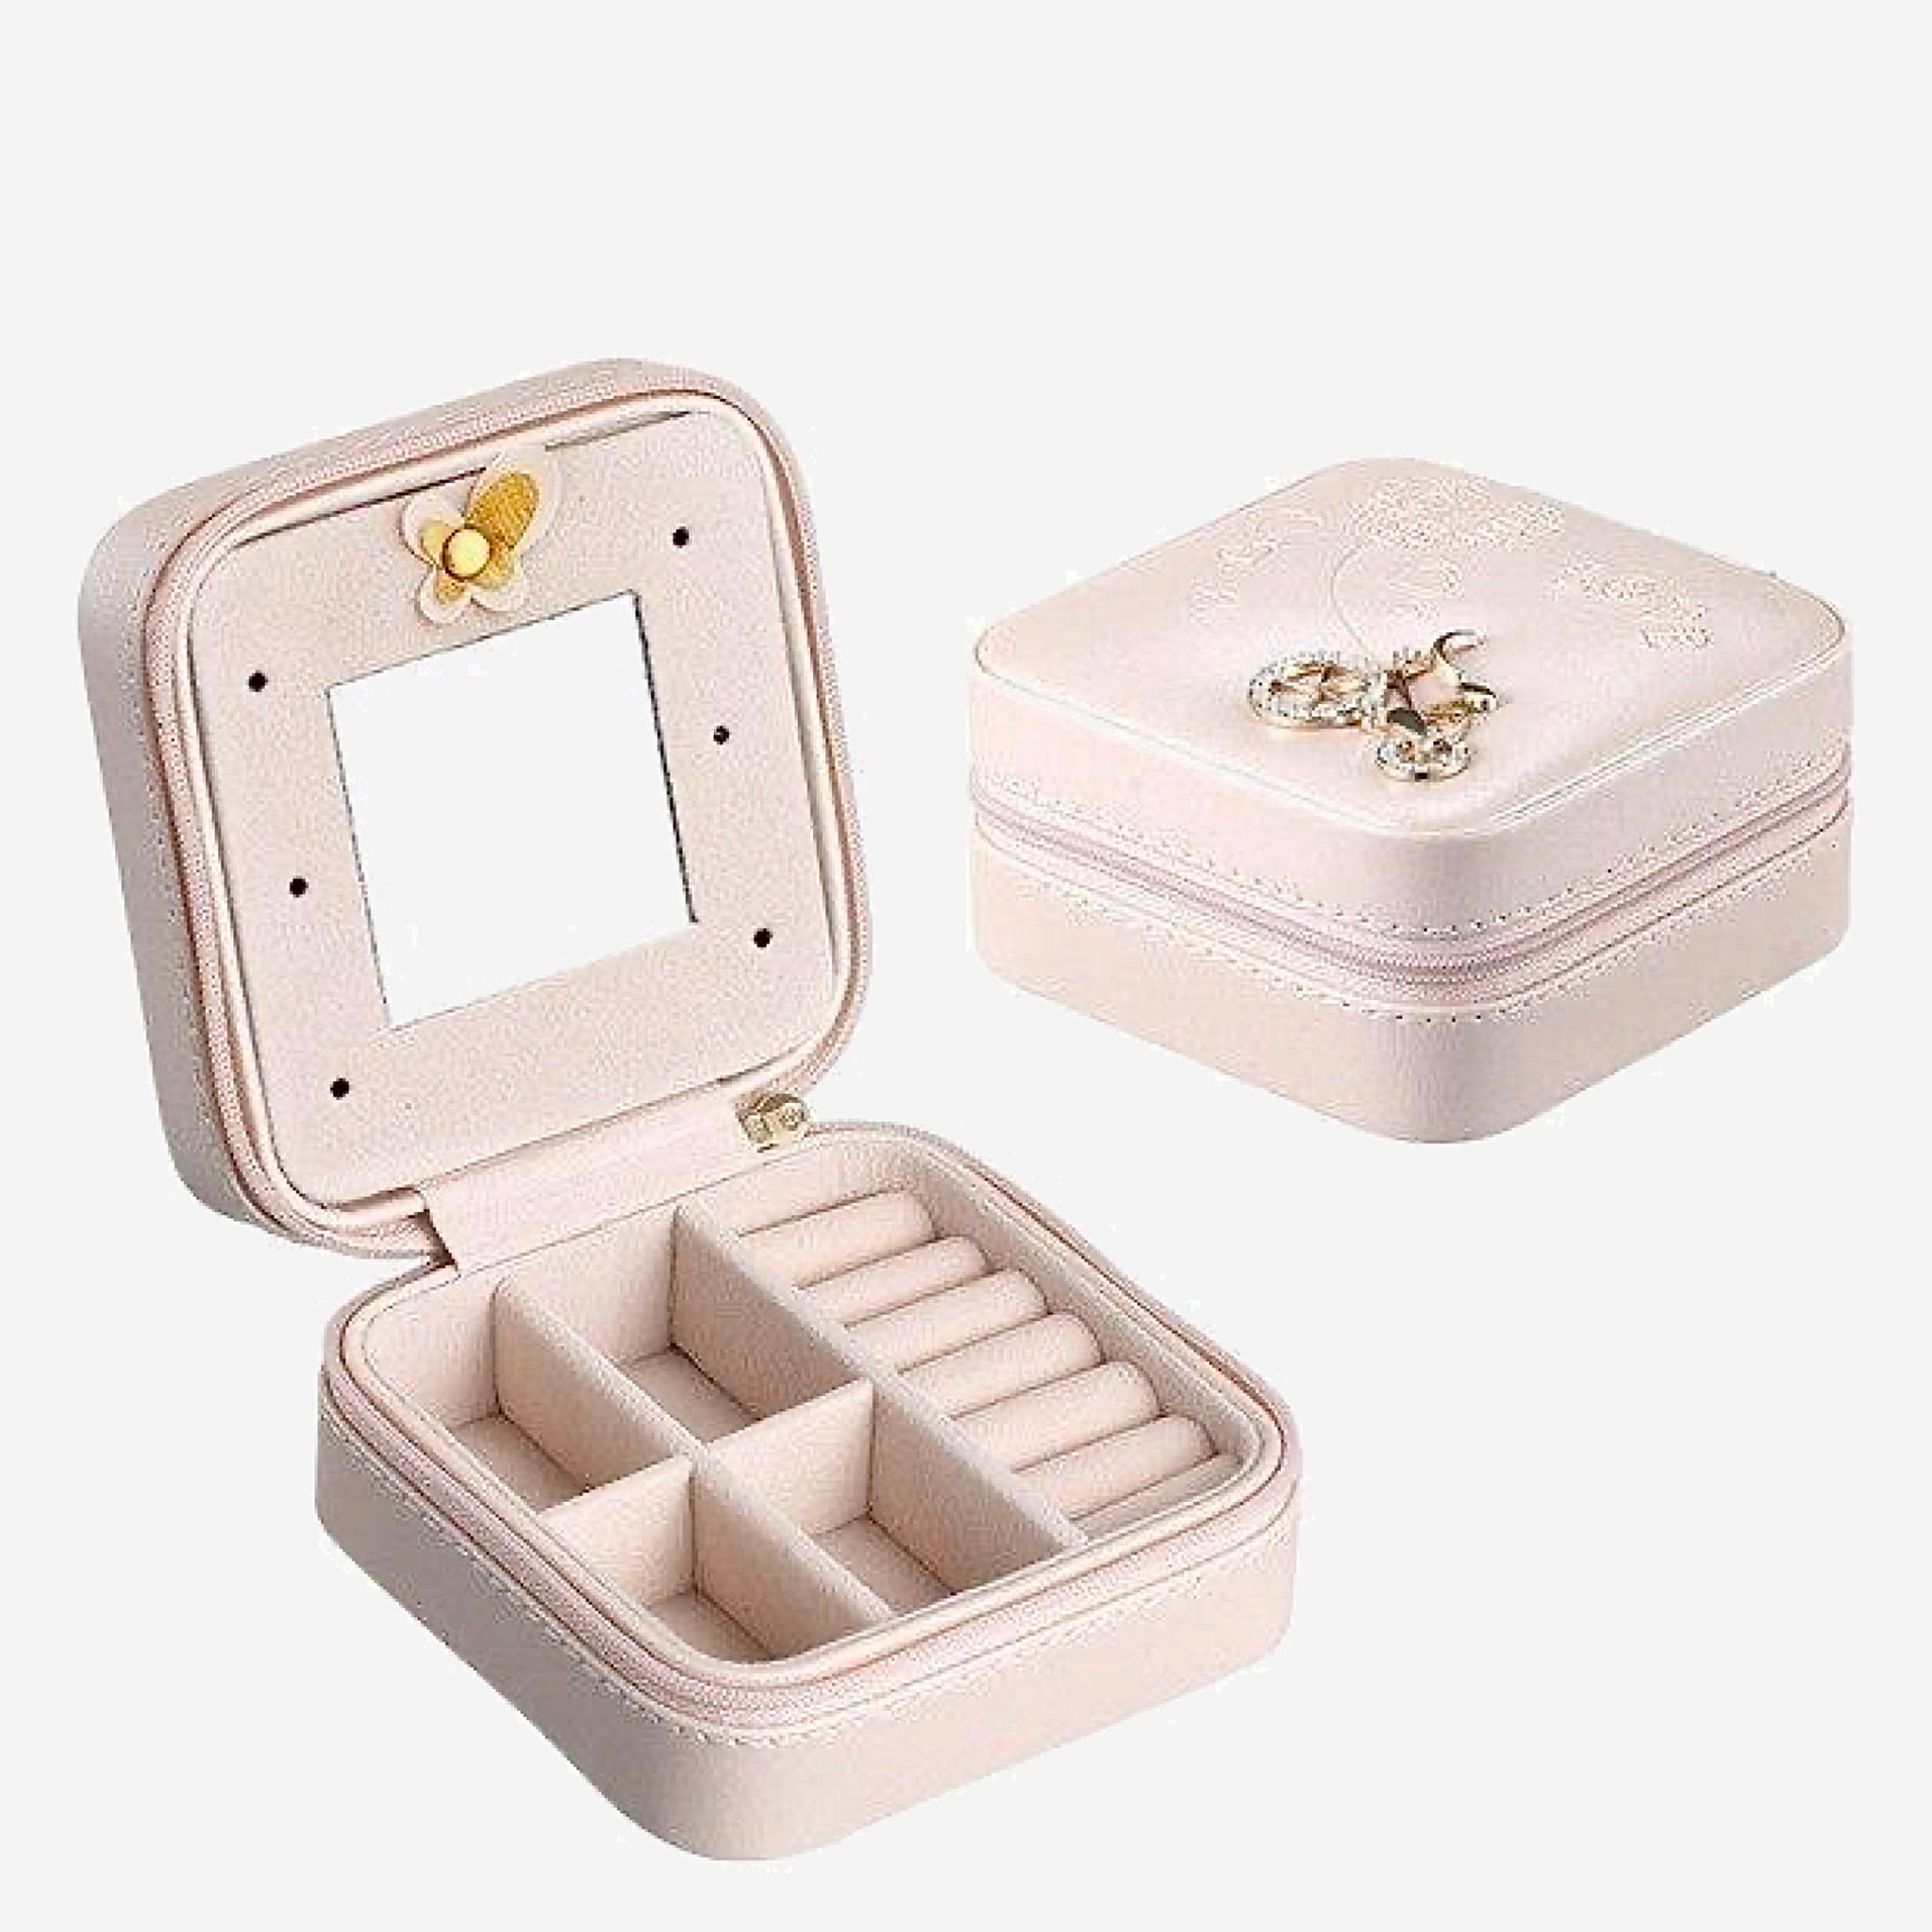 Leather Jewelry Box Travel earring boxes Holder Portable Storage Zip Organizer Case Trend Light Pink